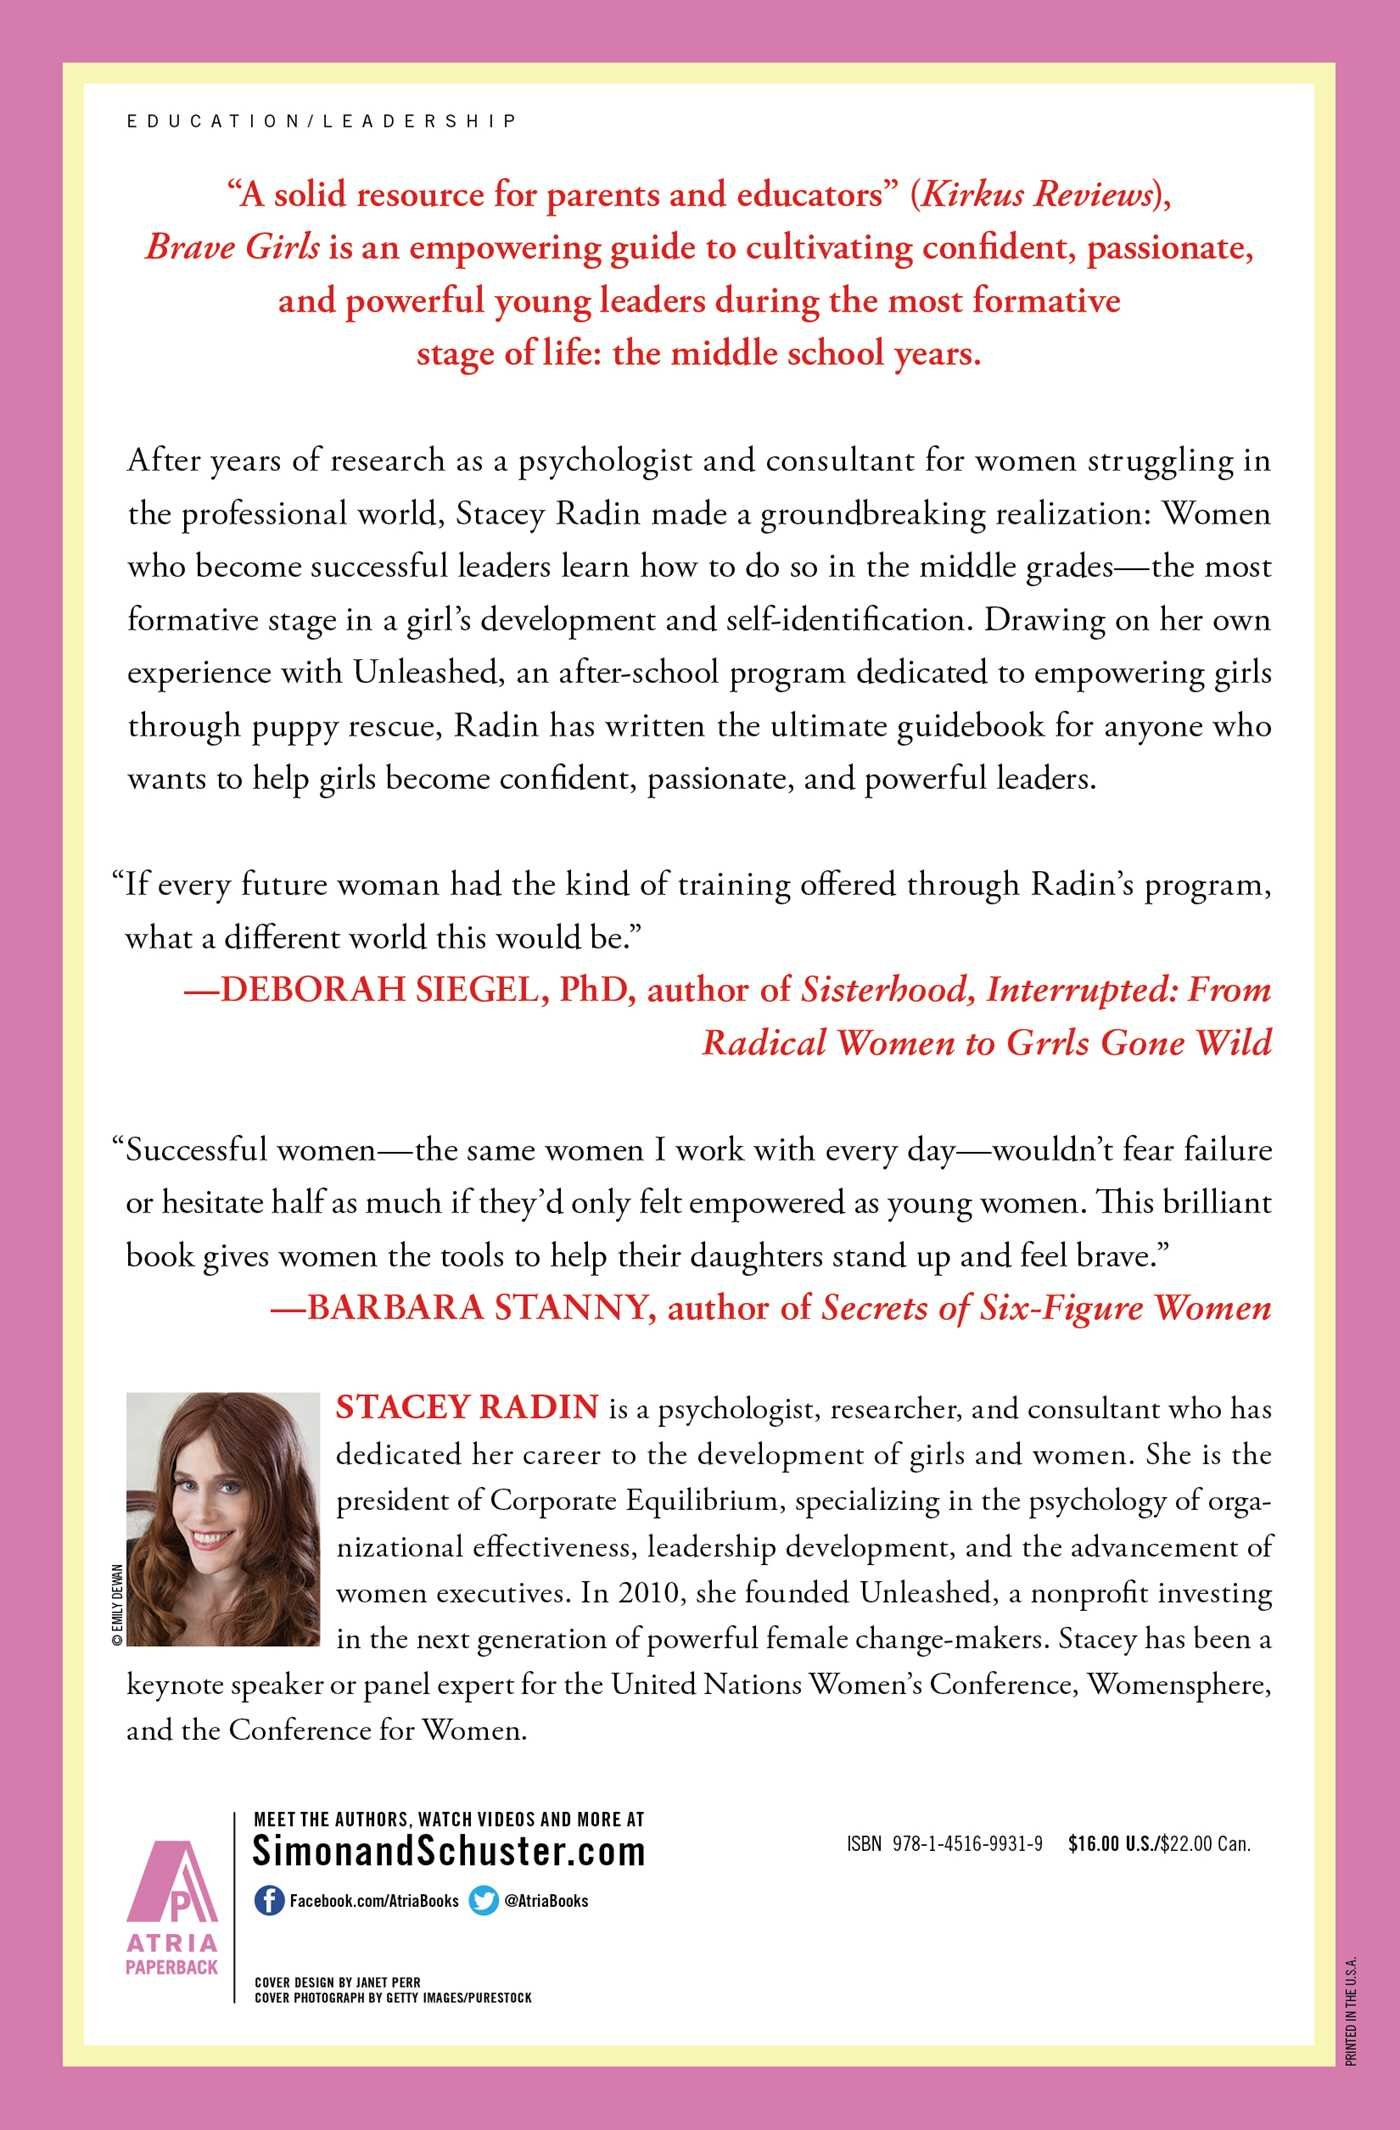 Brave Girls: Raising Young Women with Passion and Purpose to Become  Powerful Leaders: Amazon.co.uk: Stacey Radin: 9781451699319: Books